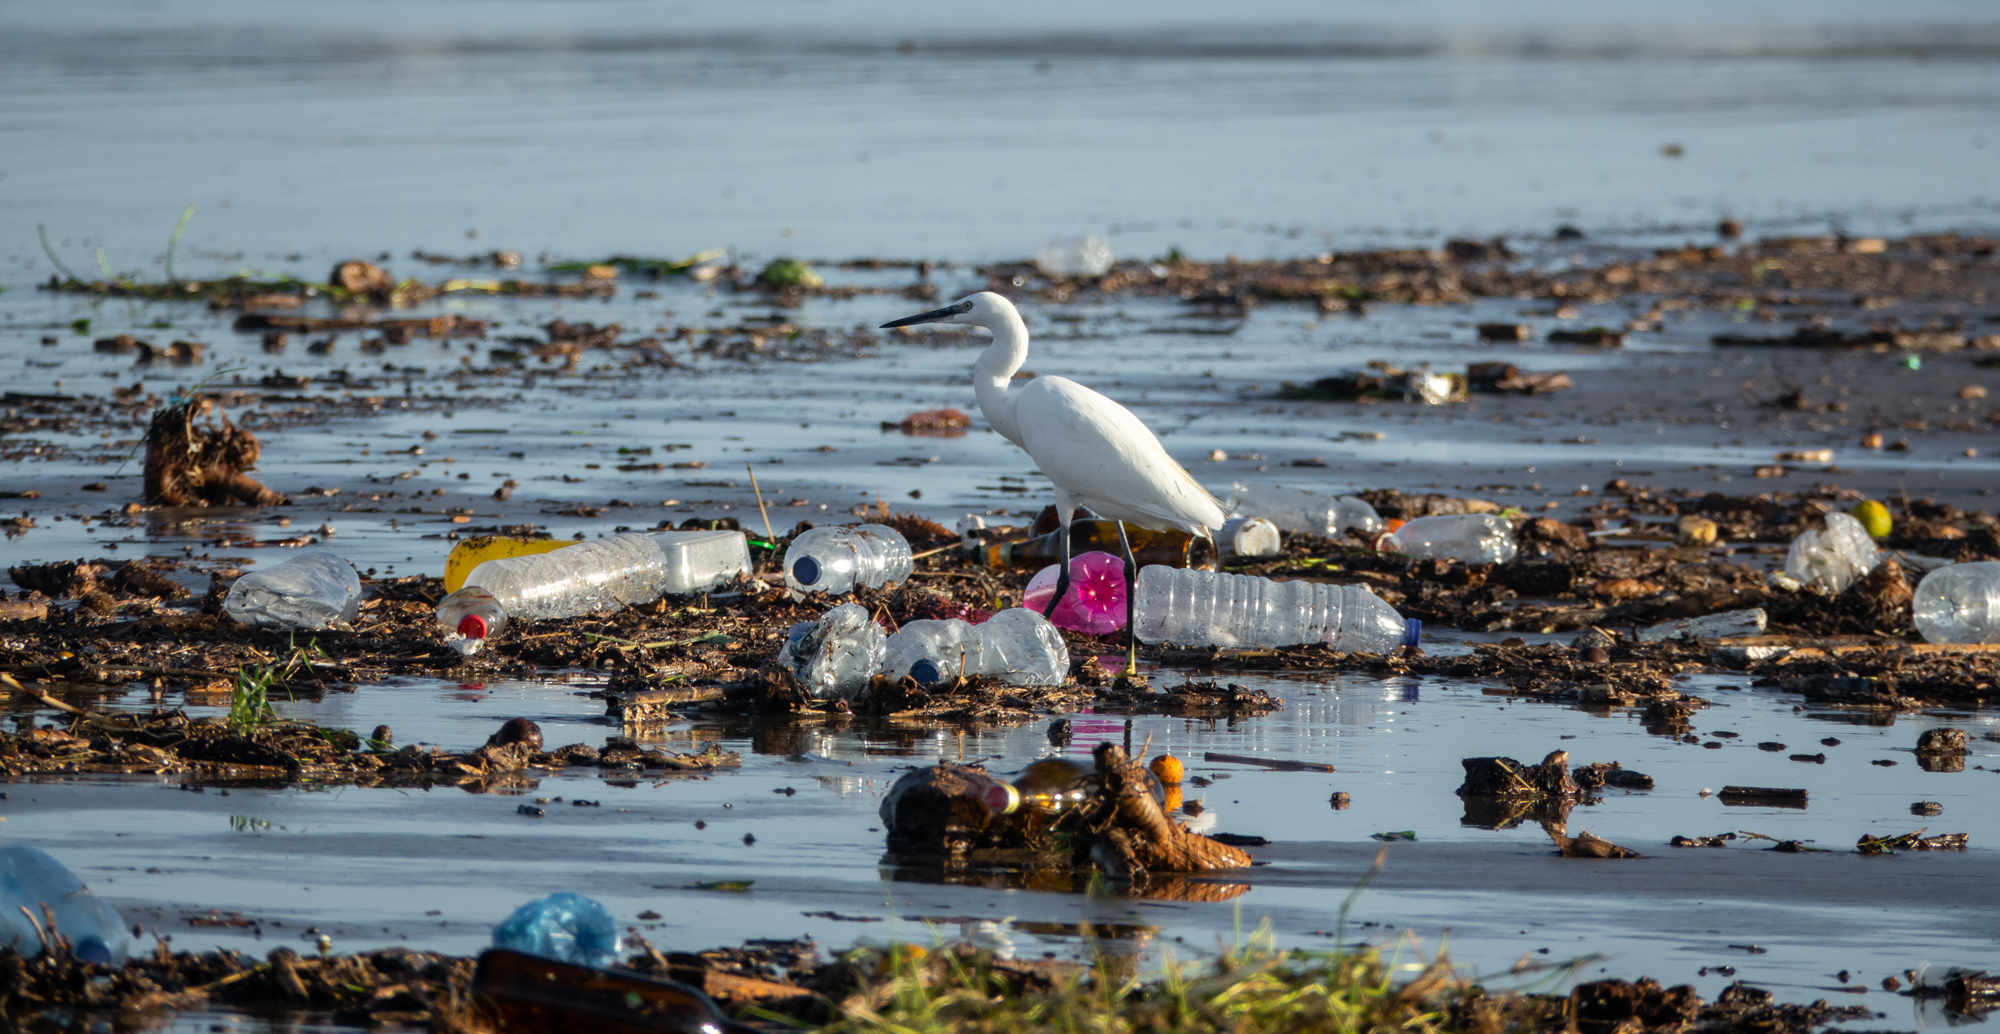 A little egret (Egretta garzetta) wades through trash in the Everglades.